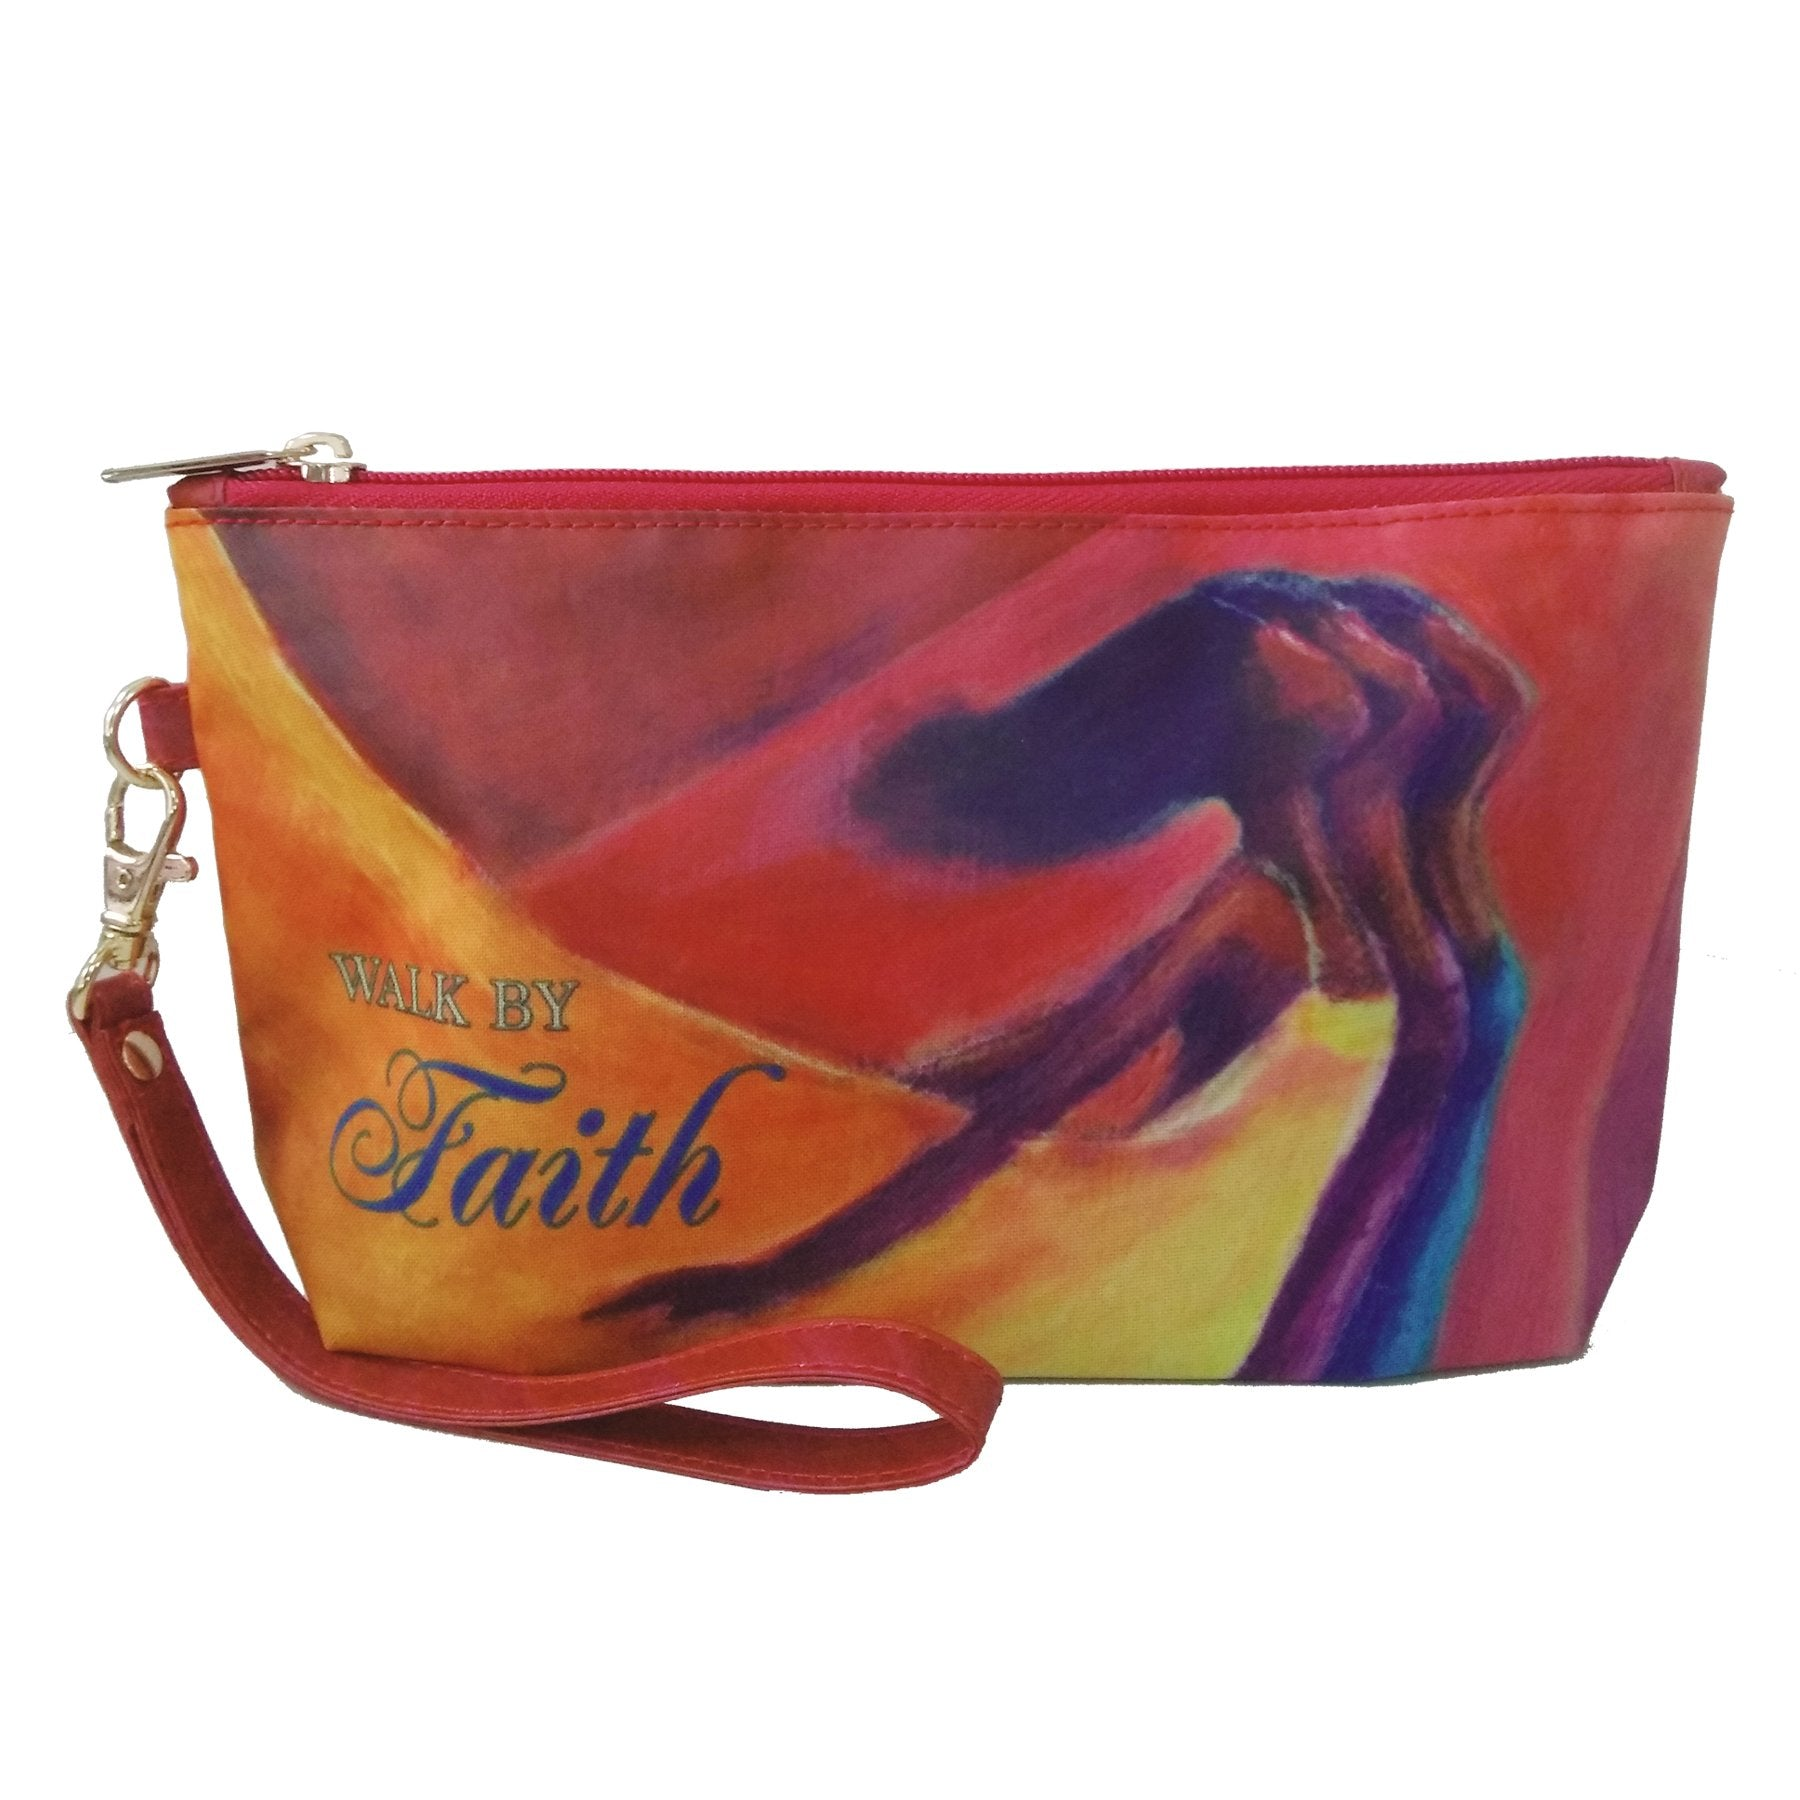 Walk by Faith: African American Cosmetic Bag by Kerream Jones